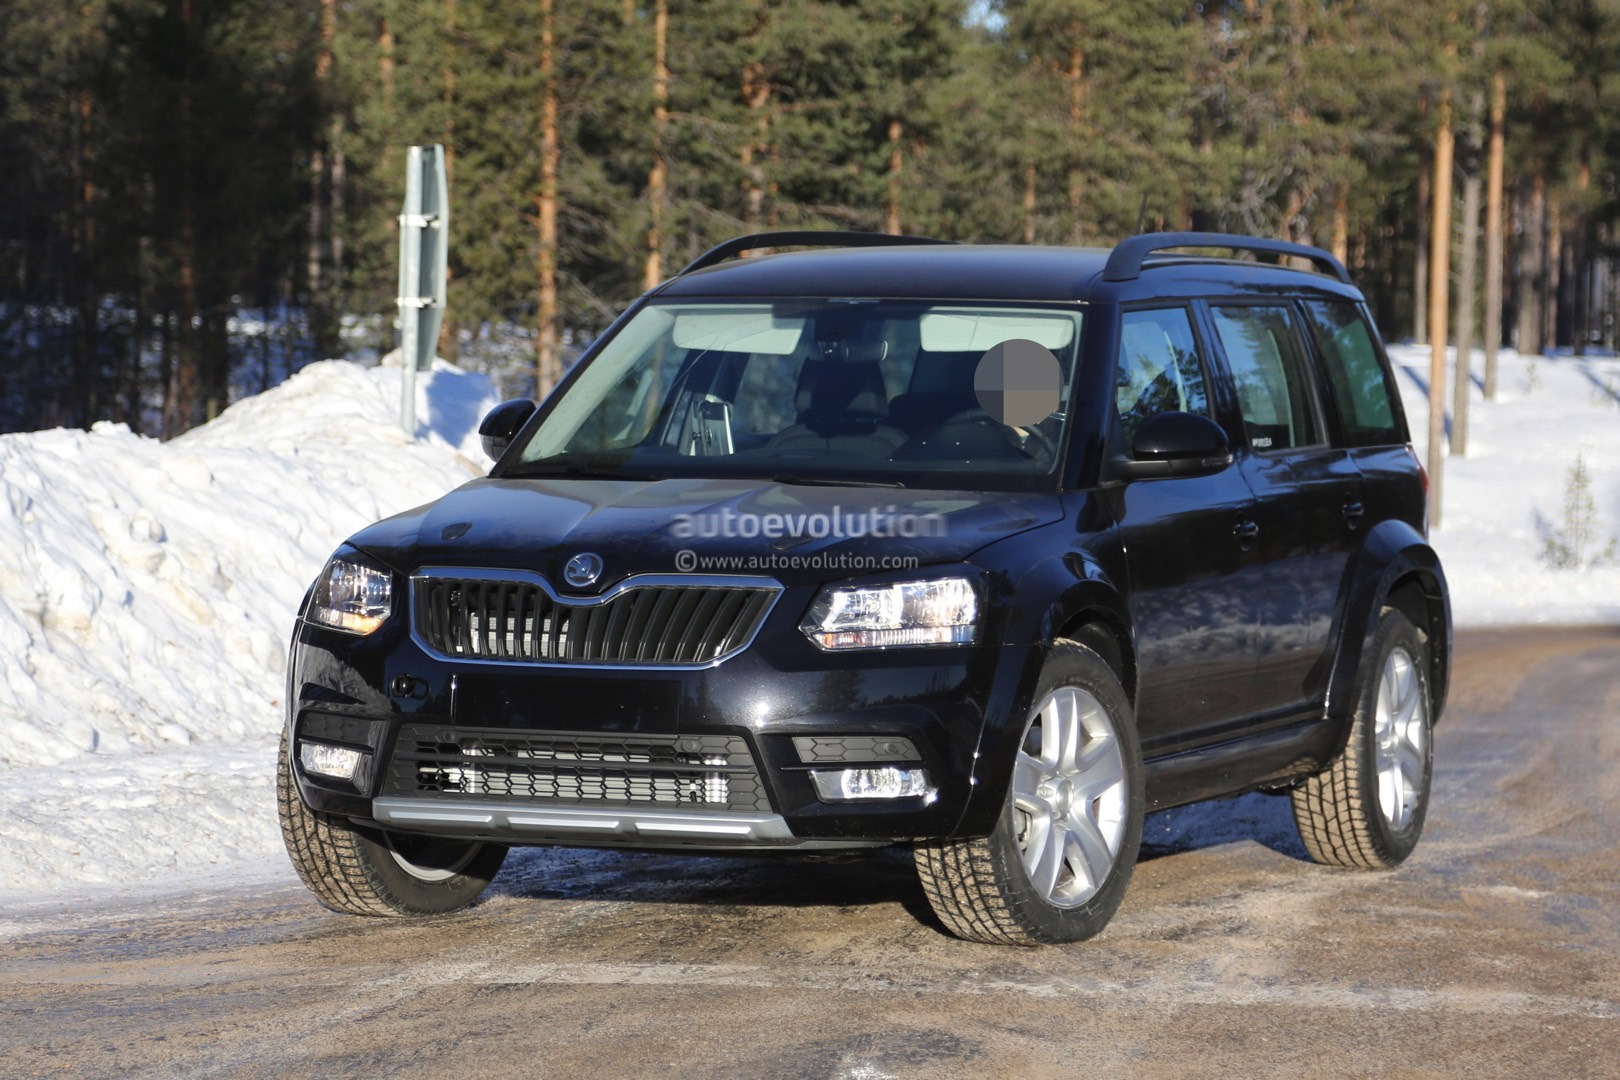 Mysterious Skoda Yeti Mule Spied Testing Could Preview